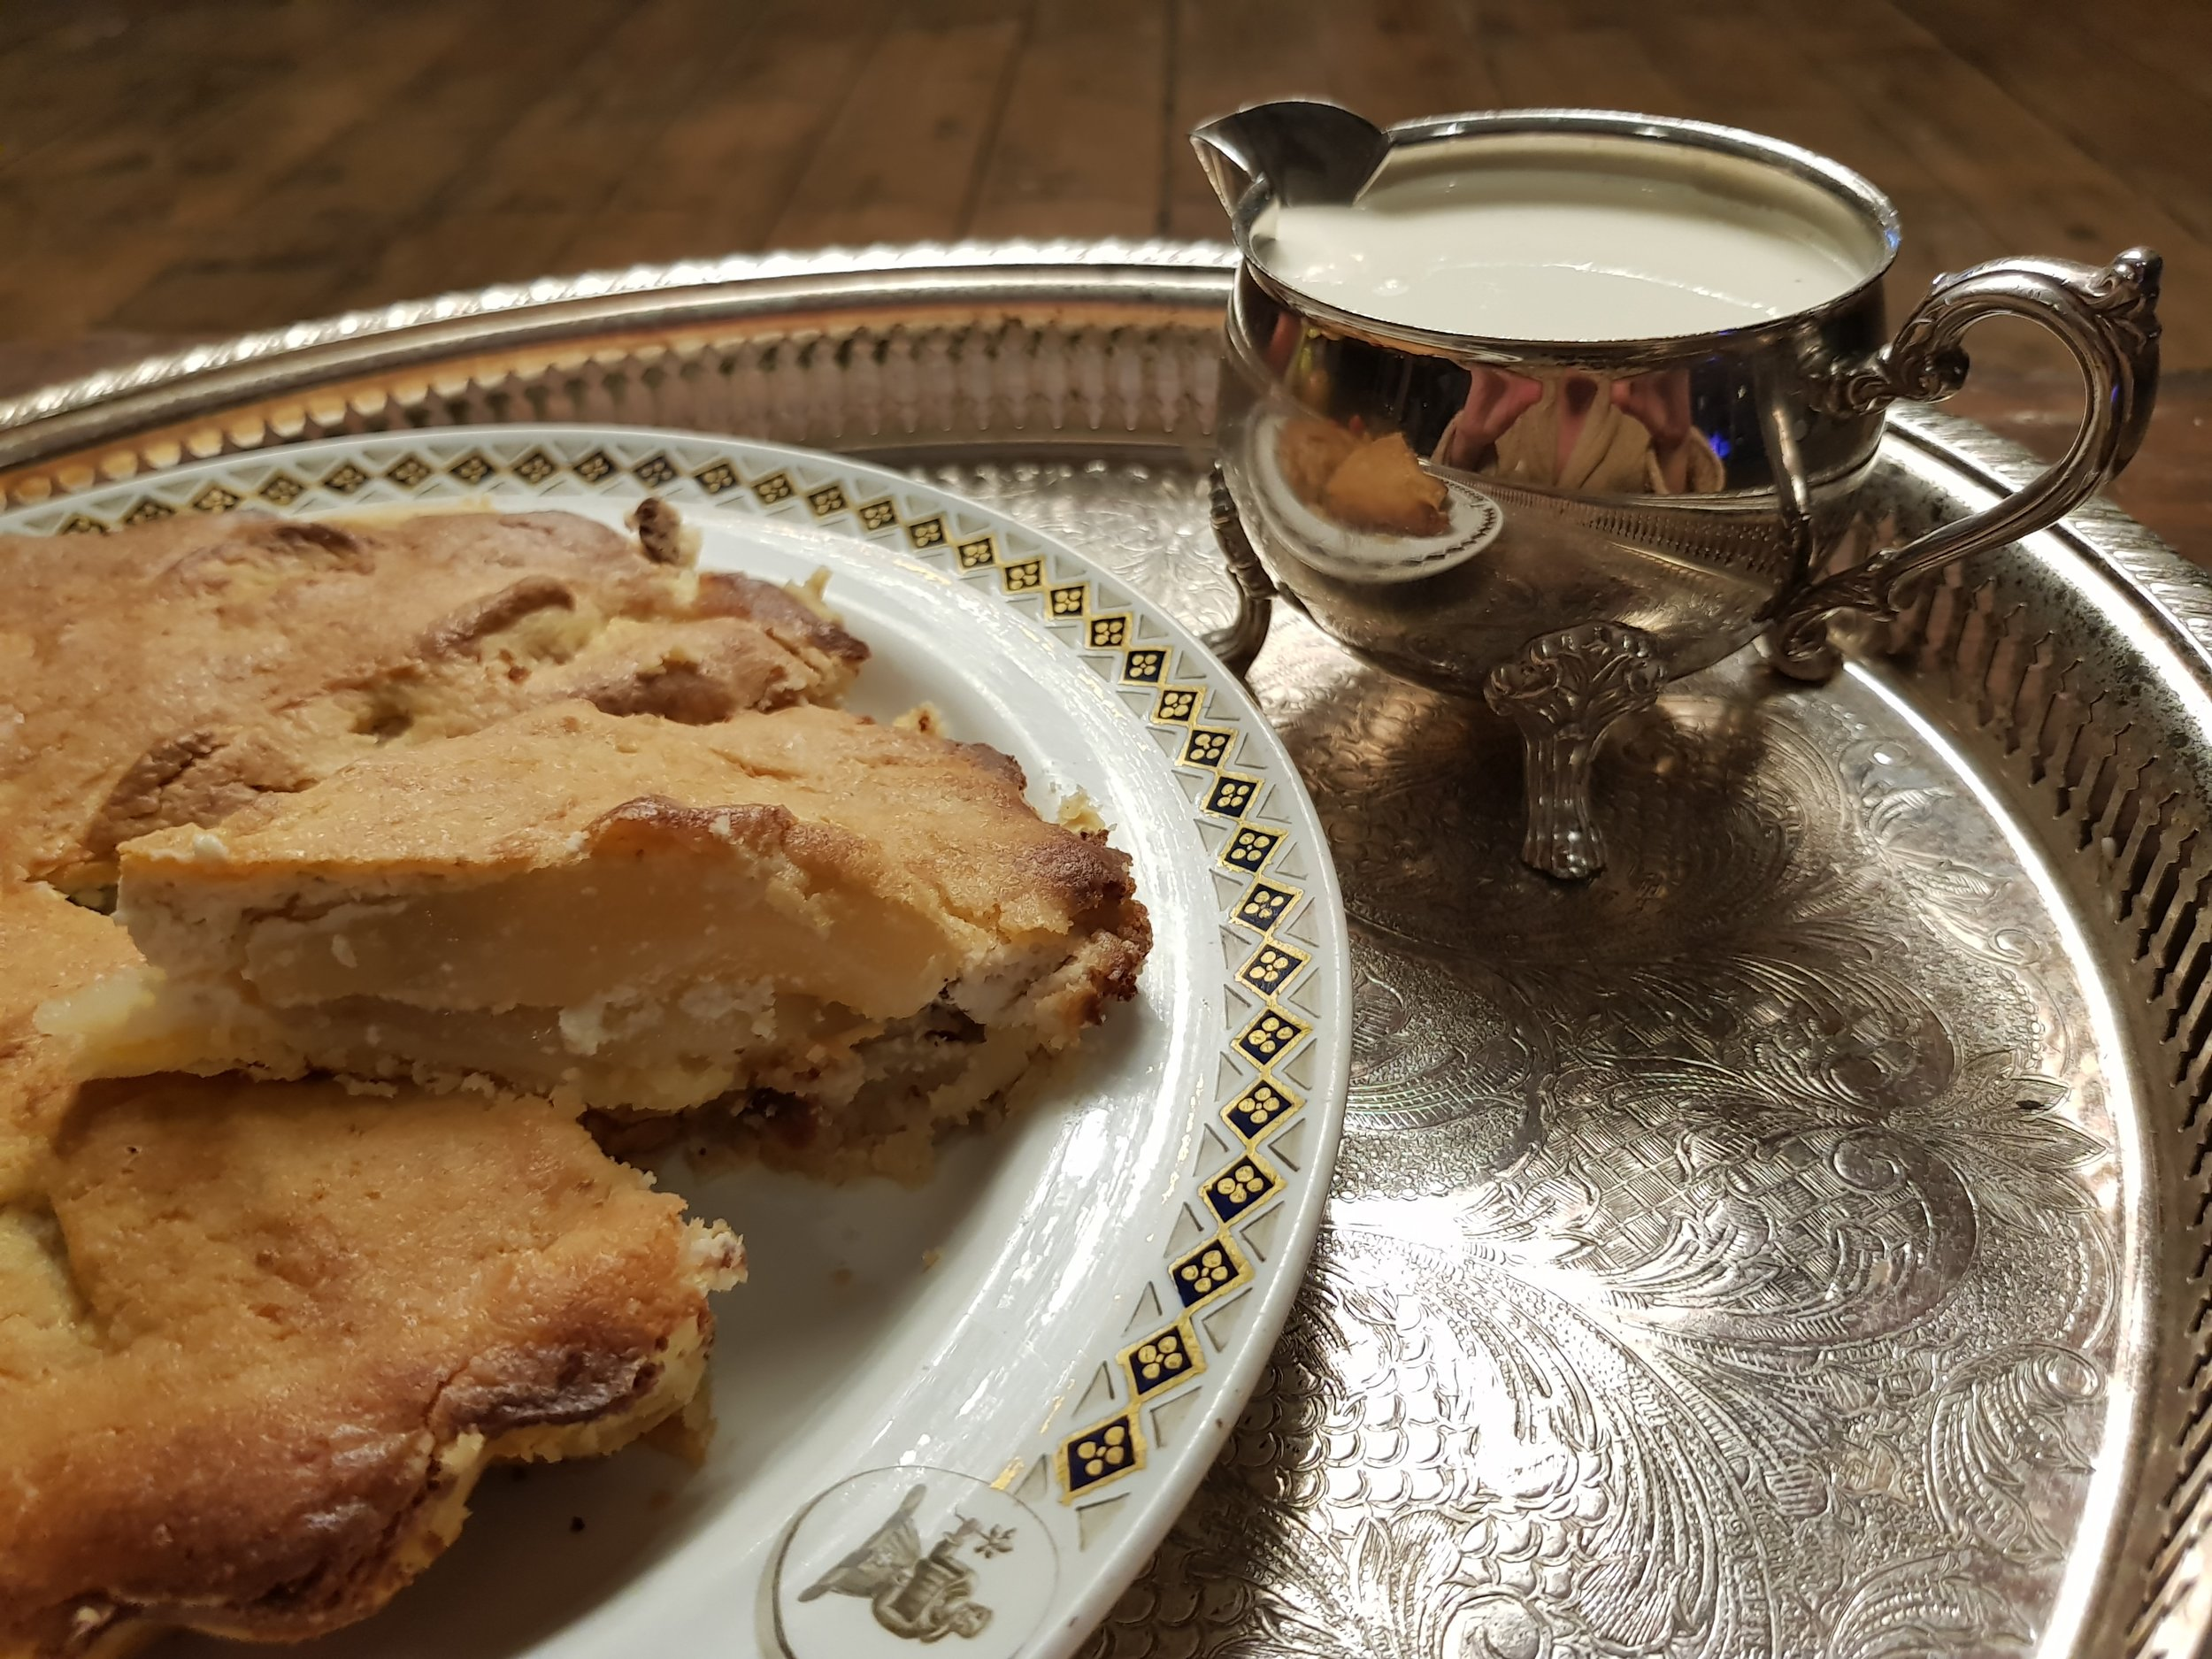 Caroline's Apple Pie (based on a recipe by Martha Lloyd) on the family's 1813 Wedgwood china.  Credit: Caroline Knight